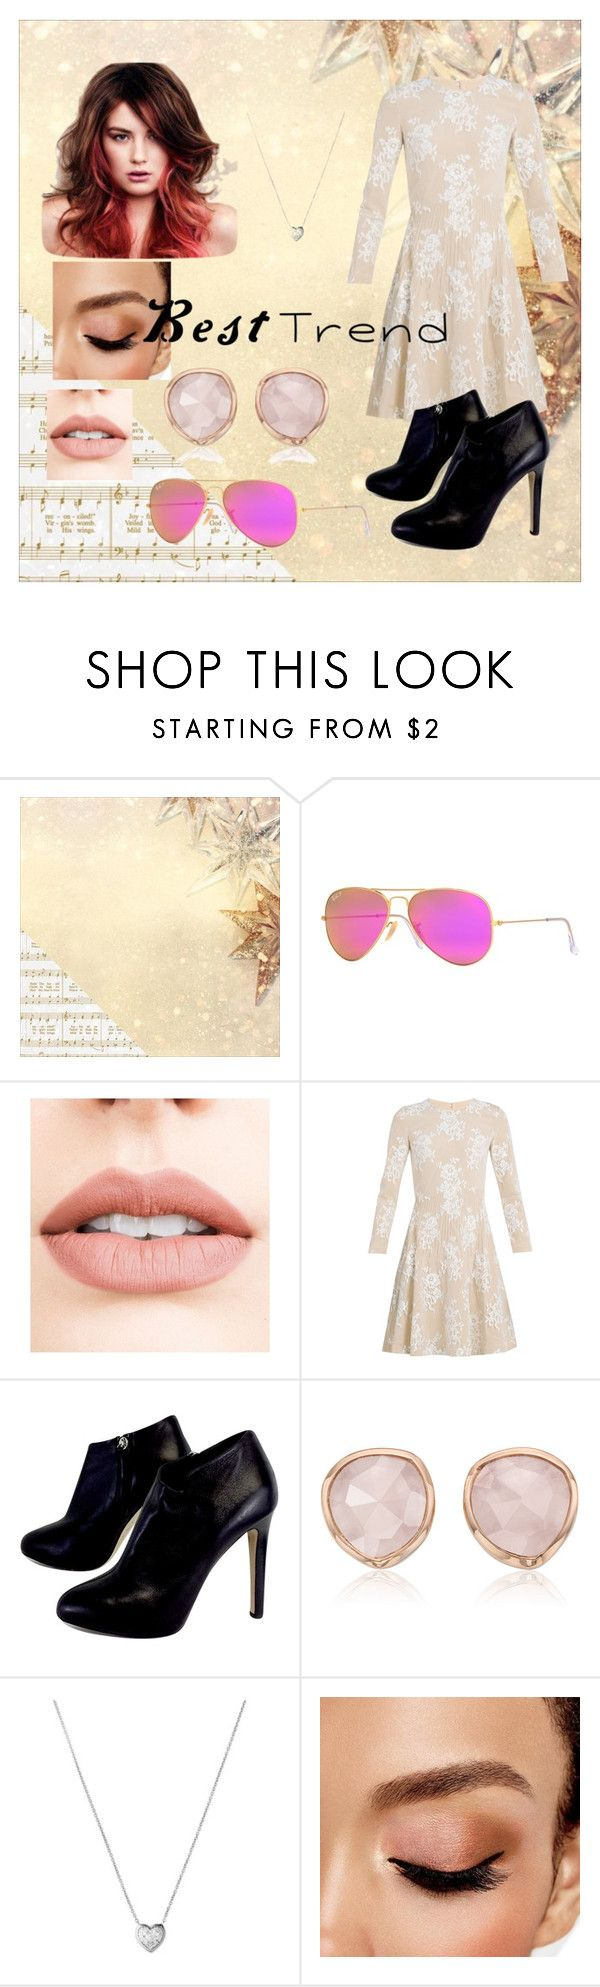 """Vestidos de moda juveniles 2016"" by johemilydrg on Polyvore featuring Kaisercraft, Ray-Ban, Jouer, HUISHAN ZHANG, Giuseppe Zanotti, Monica Vinader, Rojas, Links of London, Avon y men's fashion"